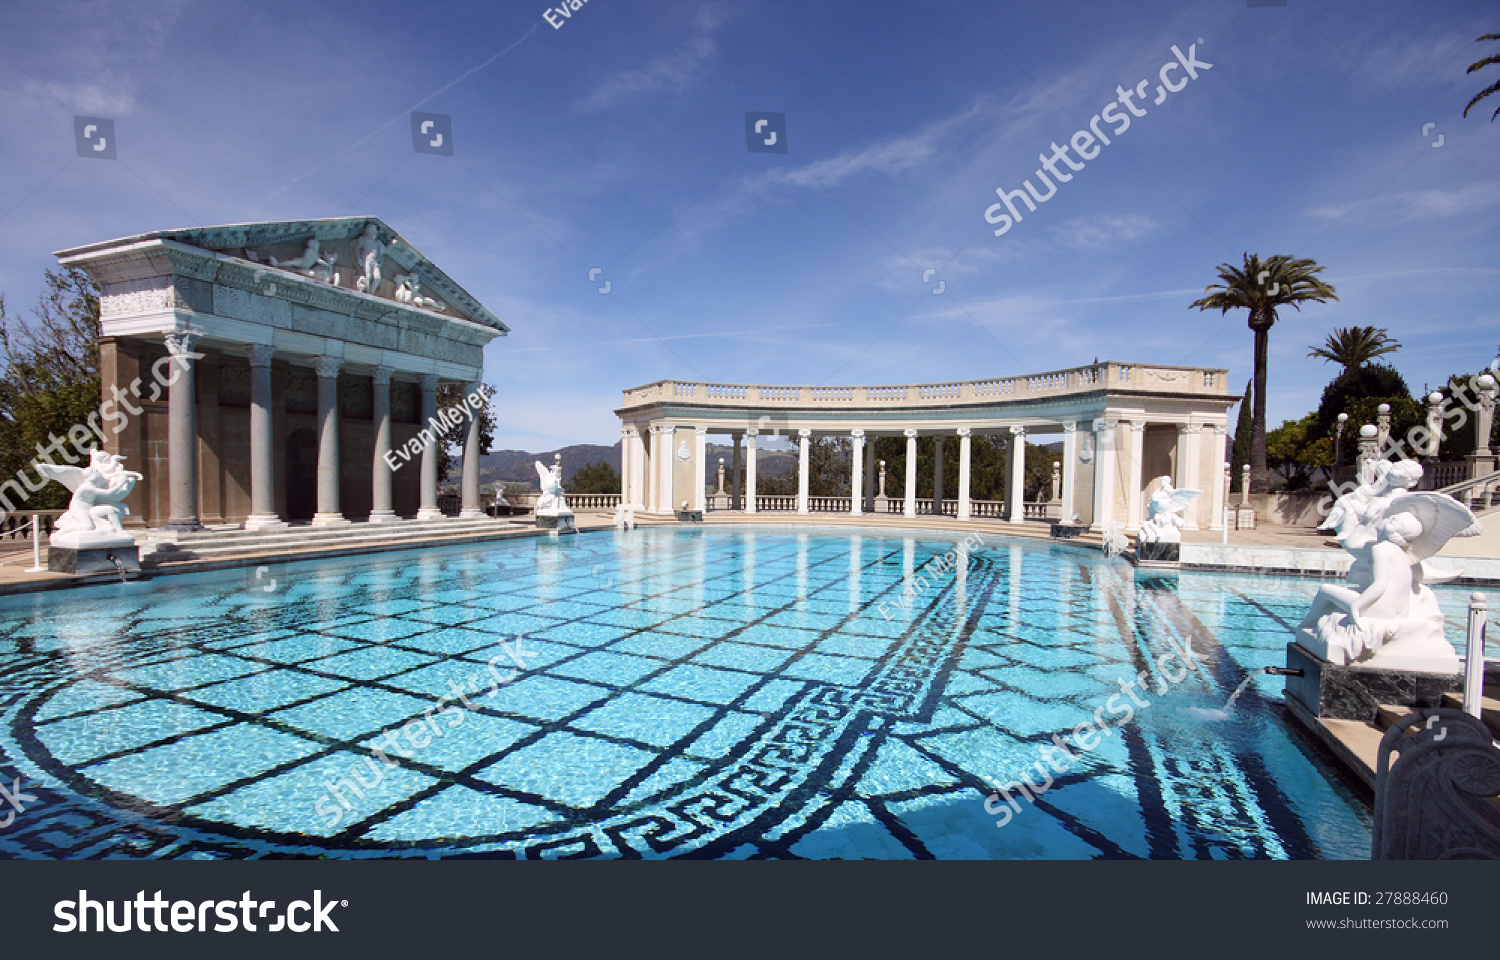 large roman outdoor swimming pool stock photo 27888460 - shutterstock